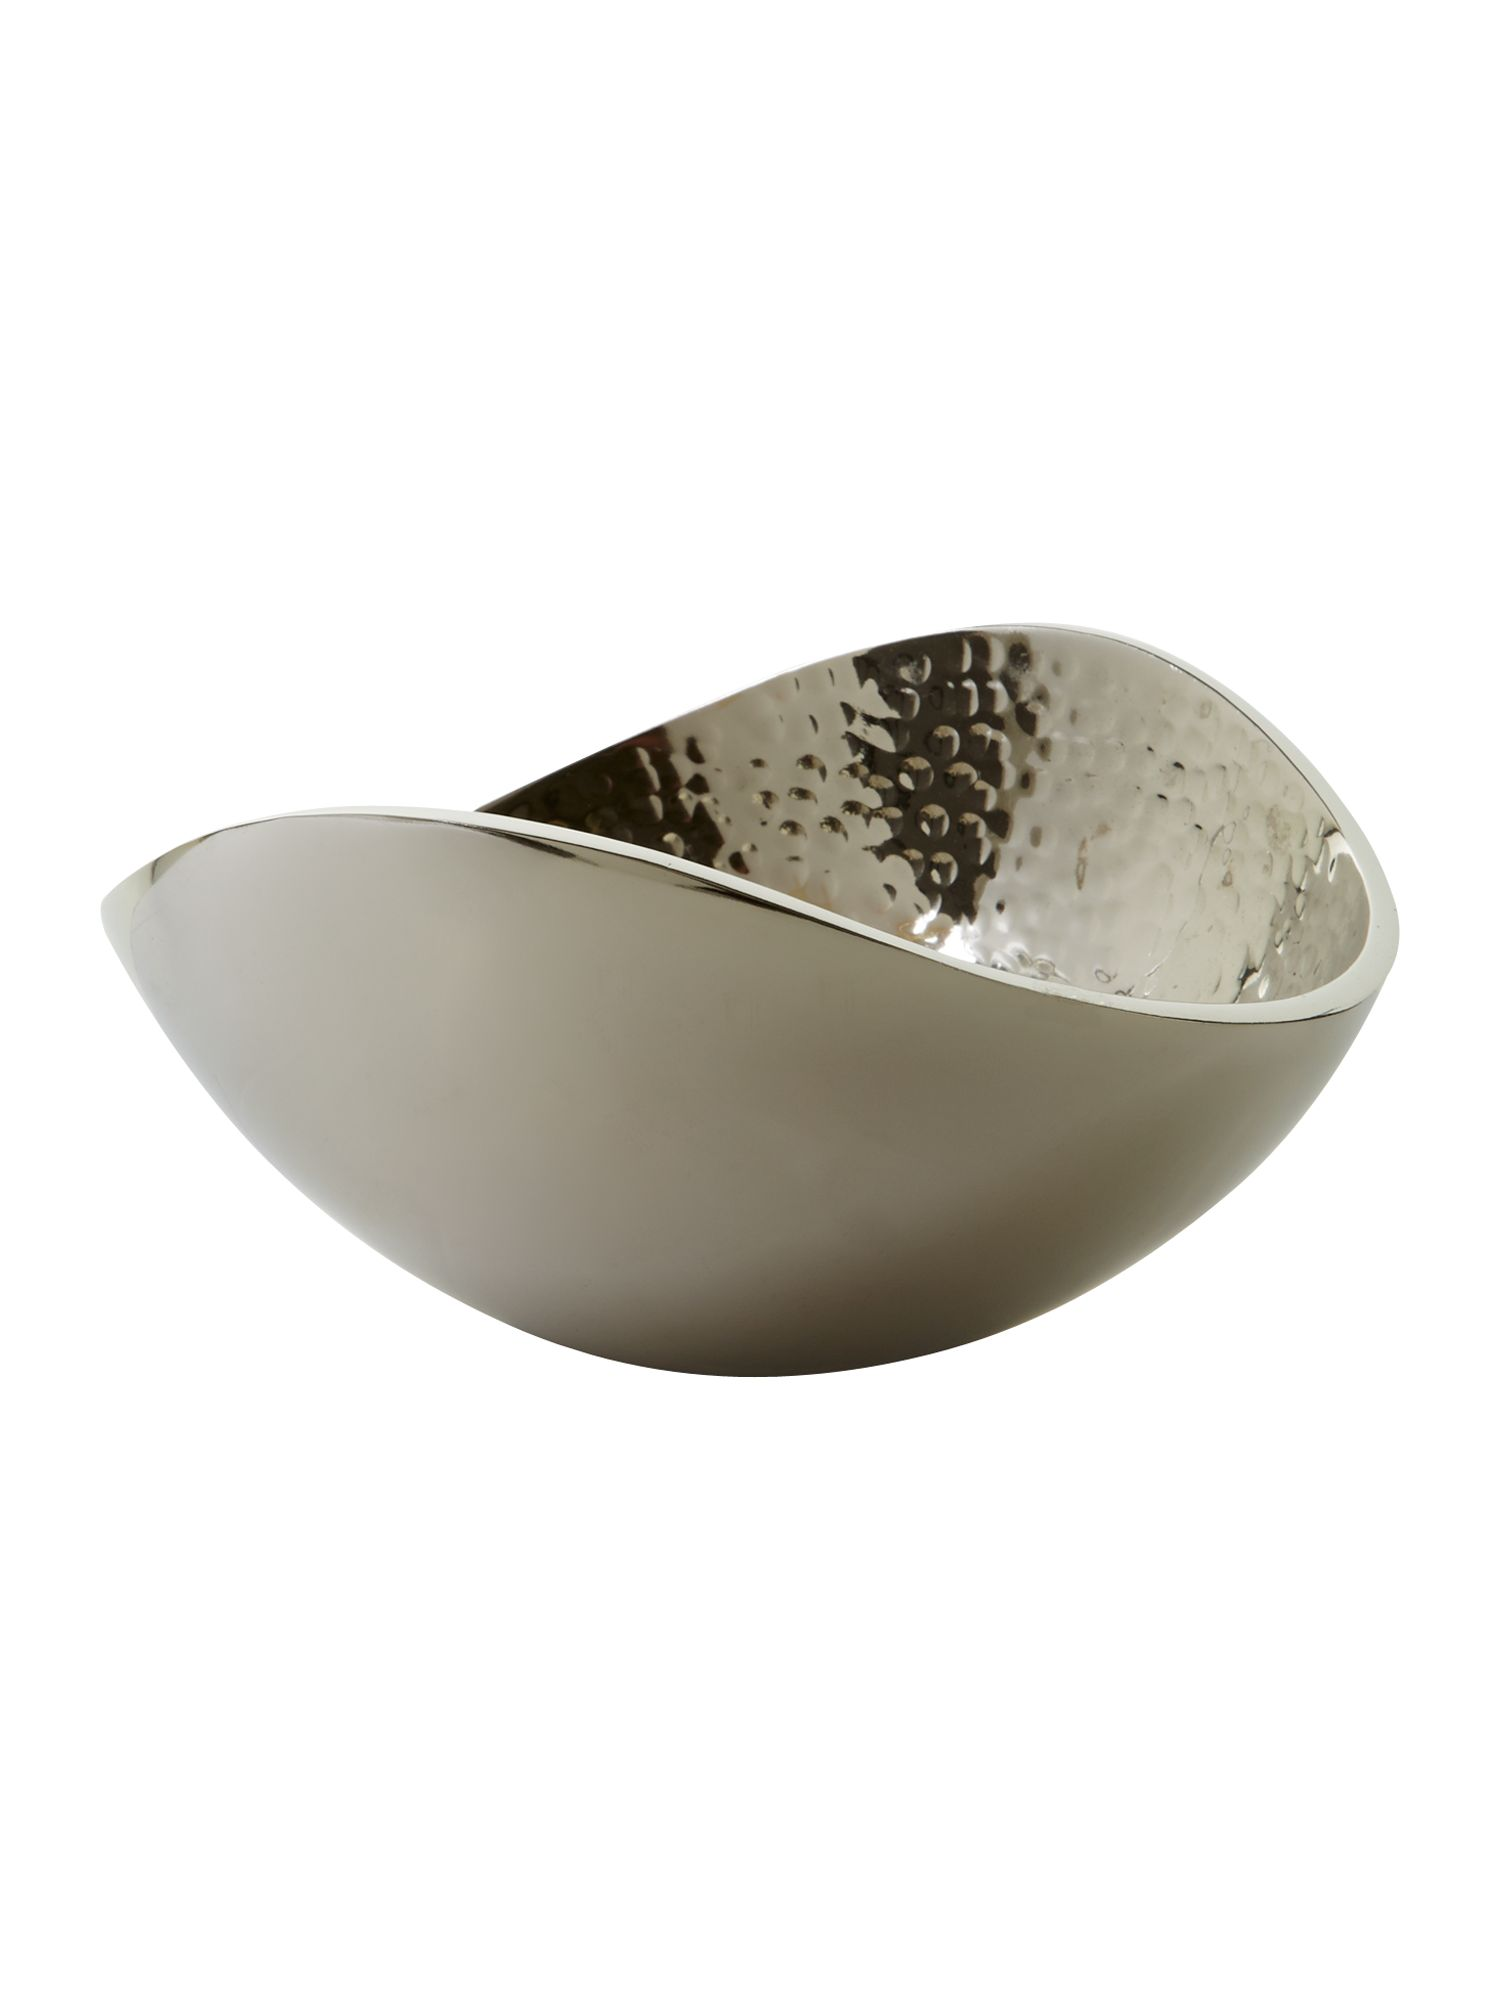 Small beaten metal oval bowl